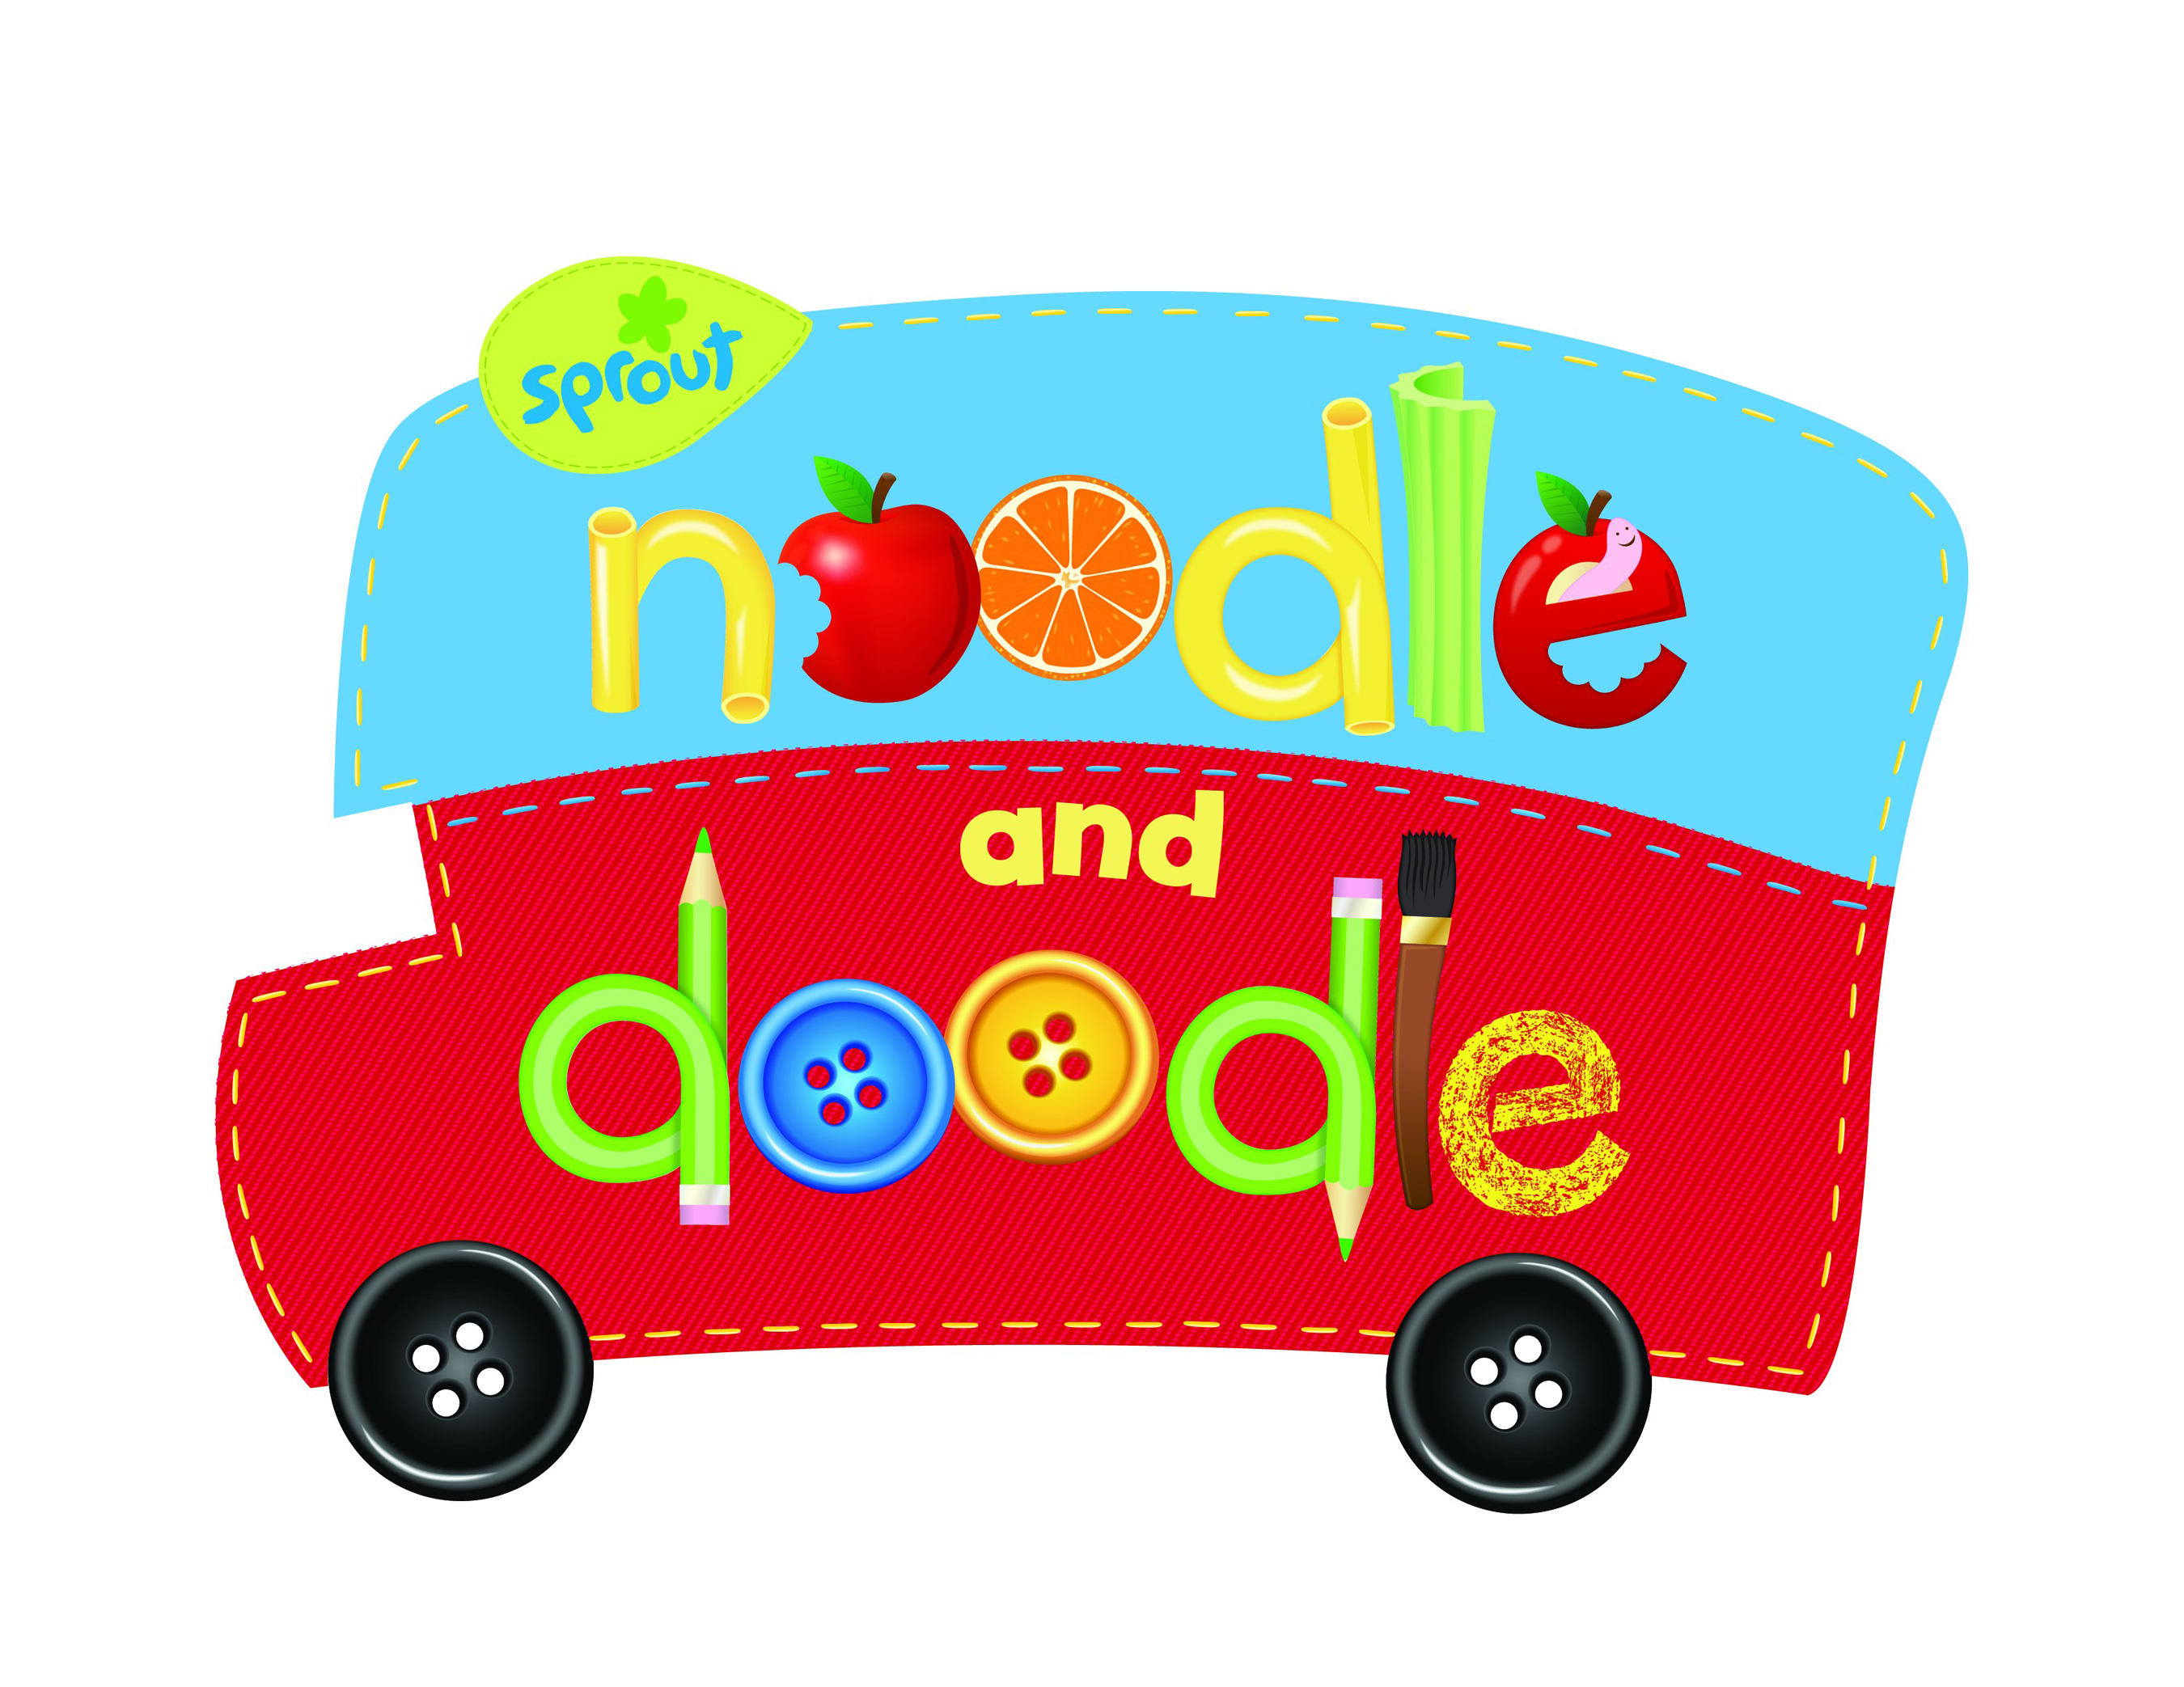 Noodle and Doodle to Debut on Sprout in September – The Next Kid Thing